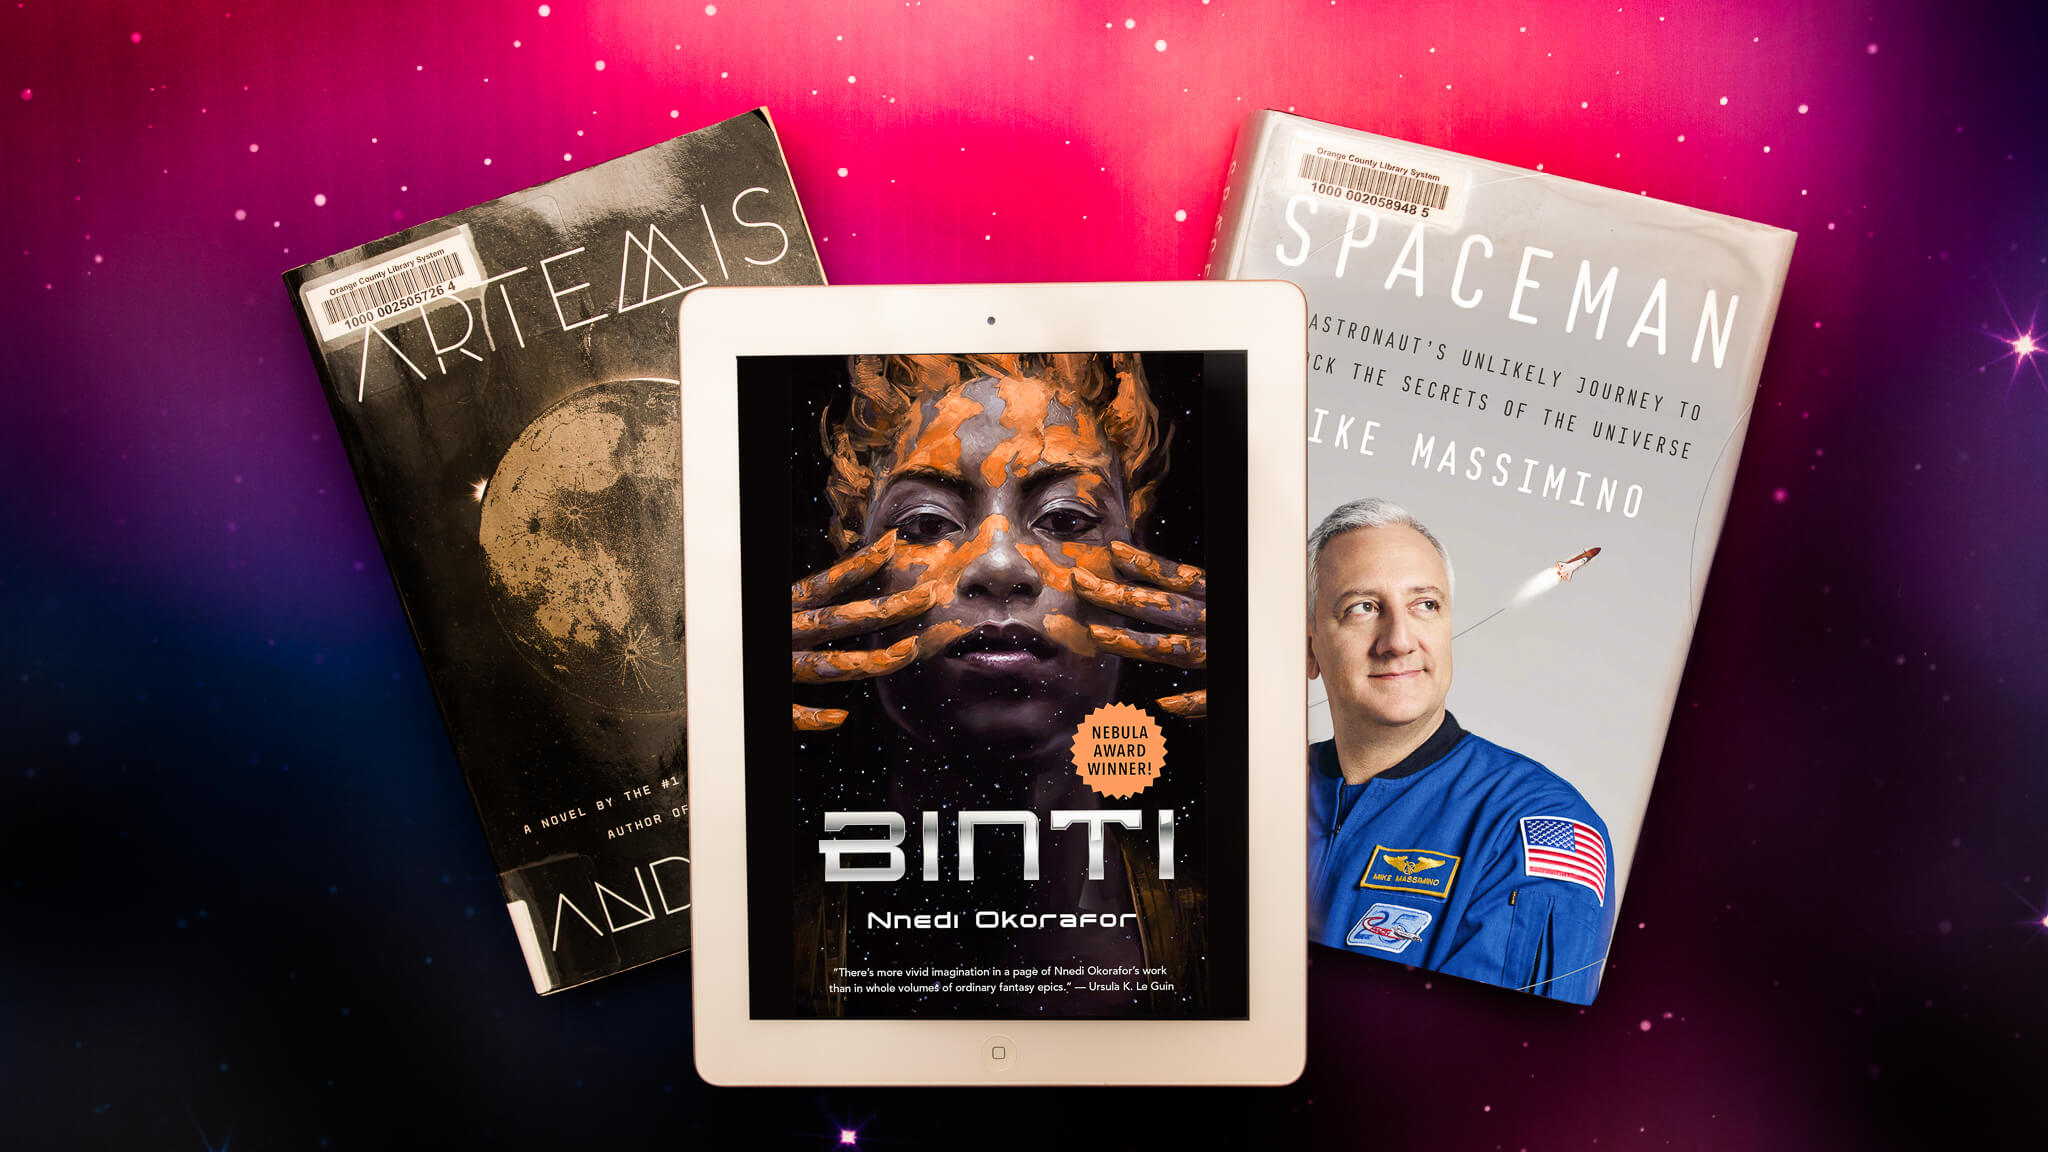 Three books - Artemis, Binti, and Spaceman